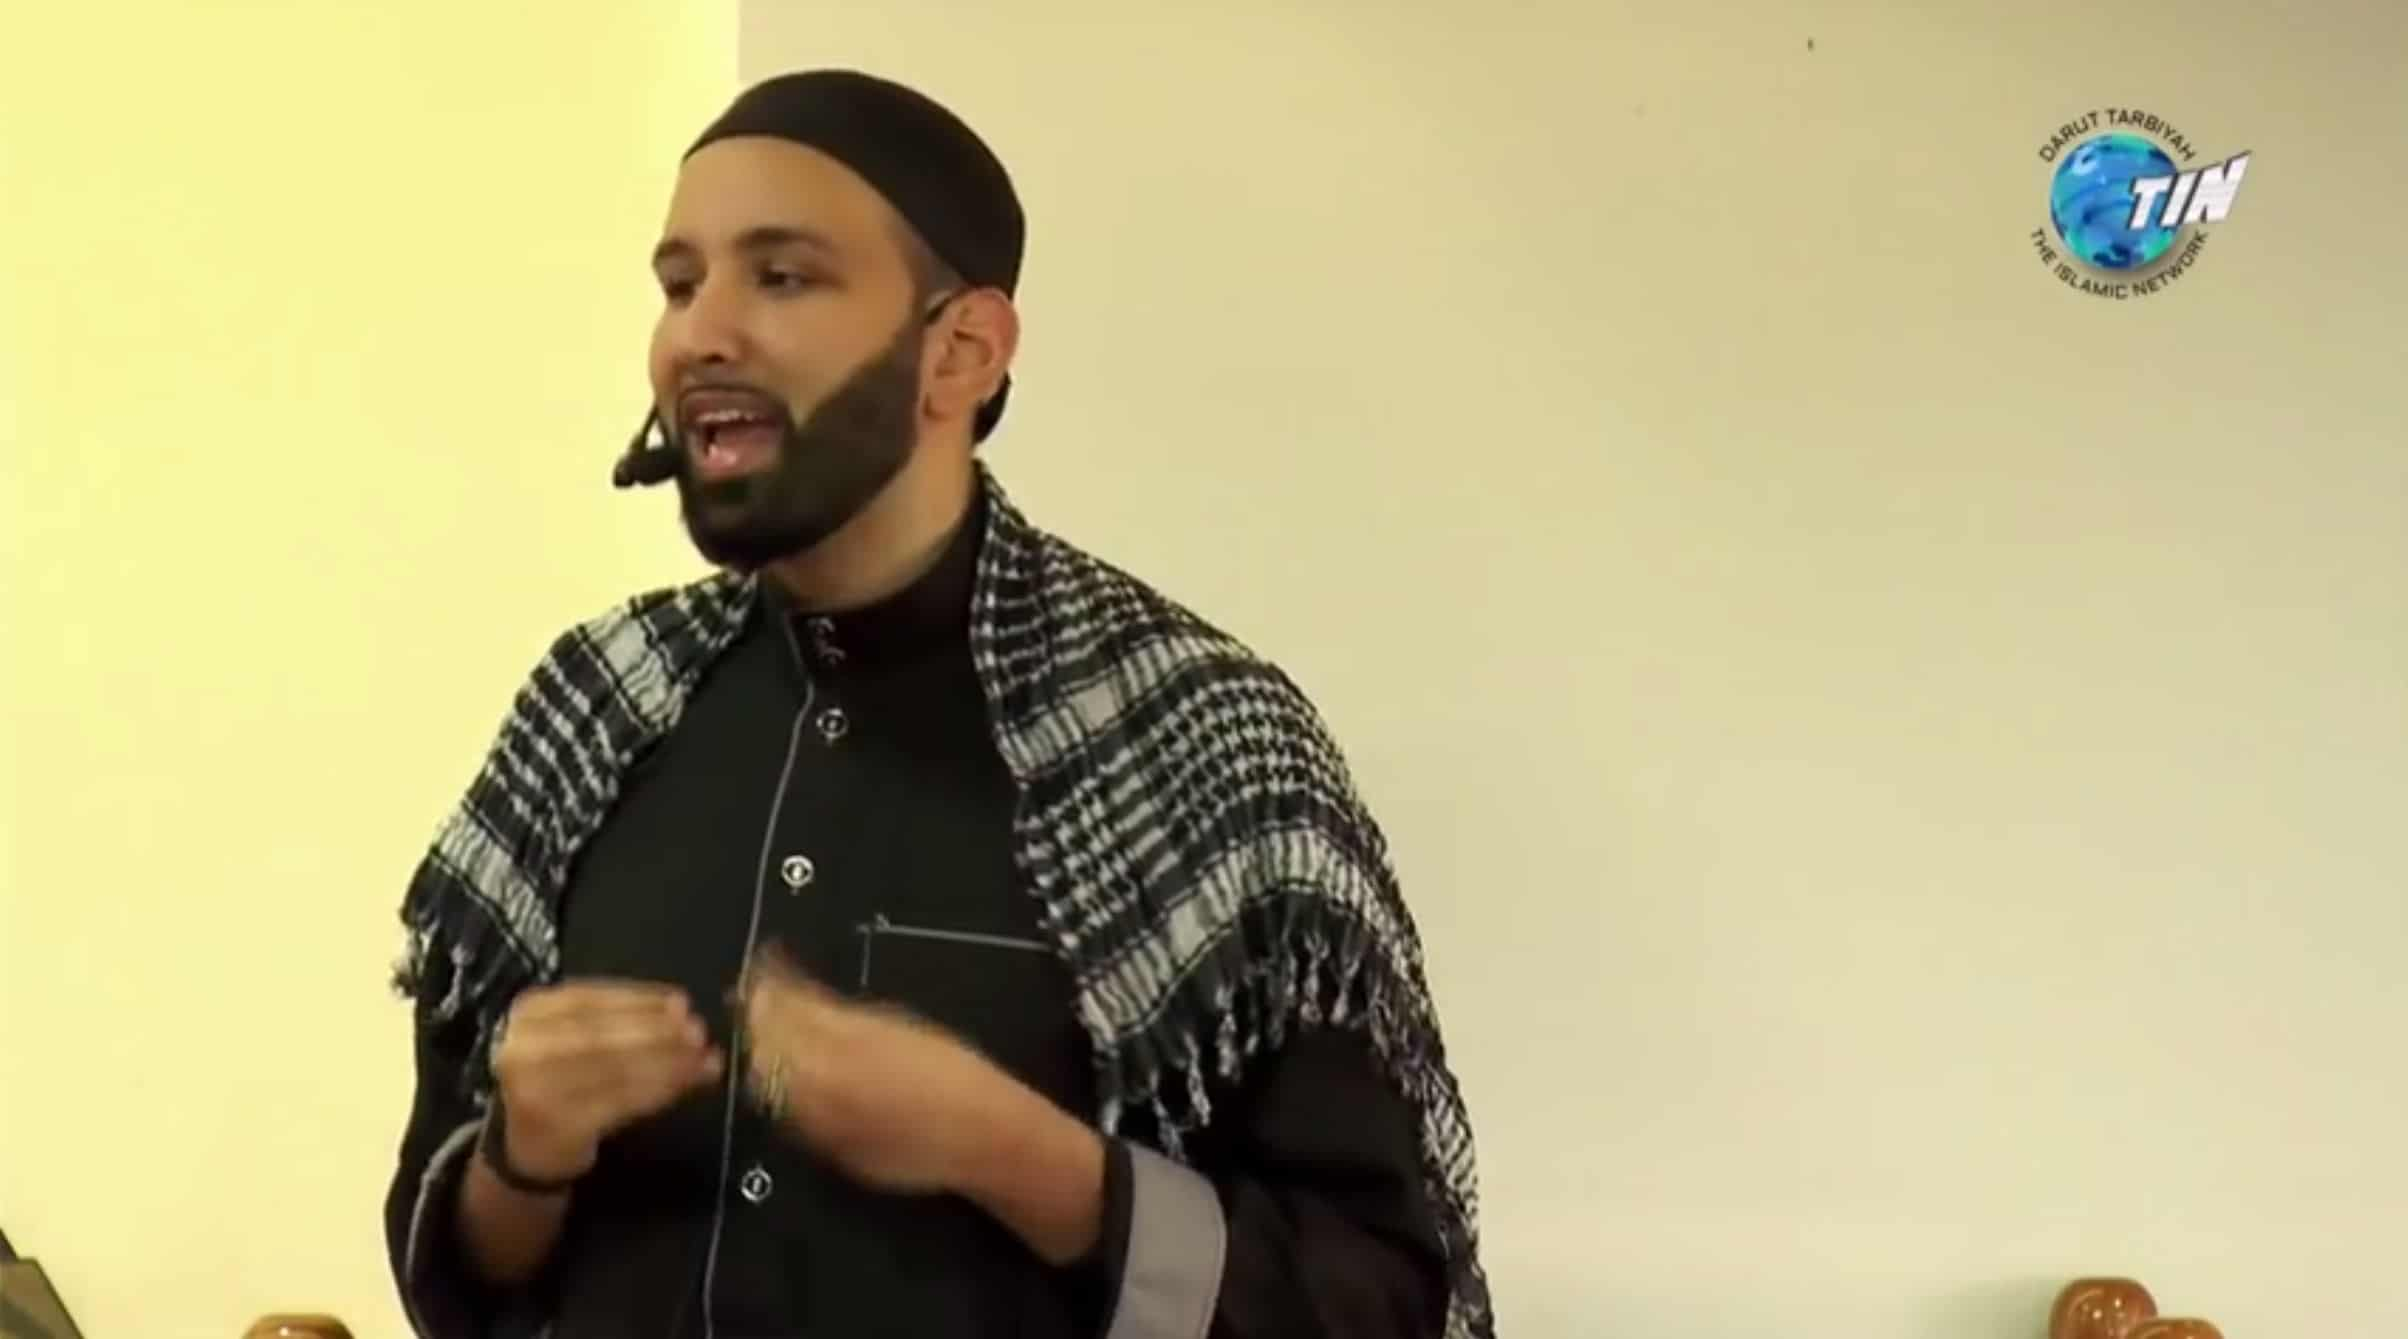 Omar Suleiman – To Love Allah, For Allah's Sake